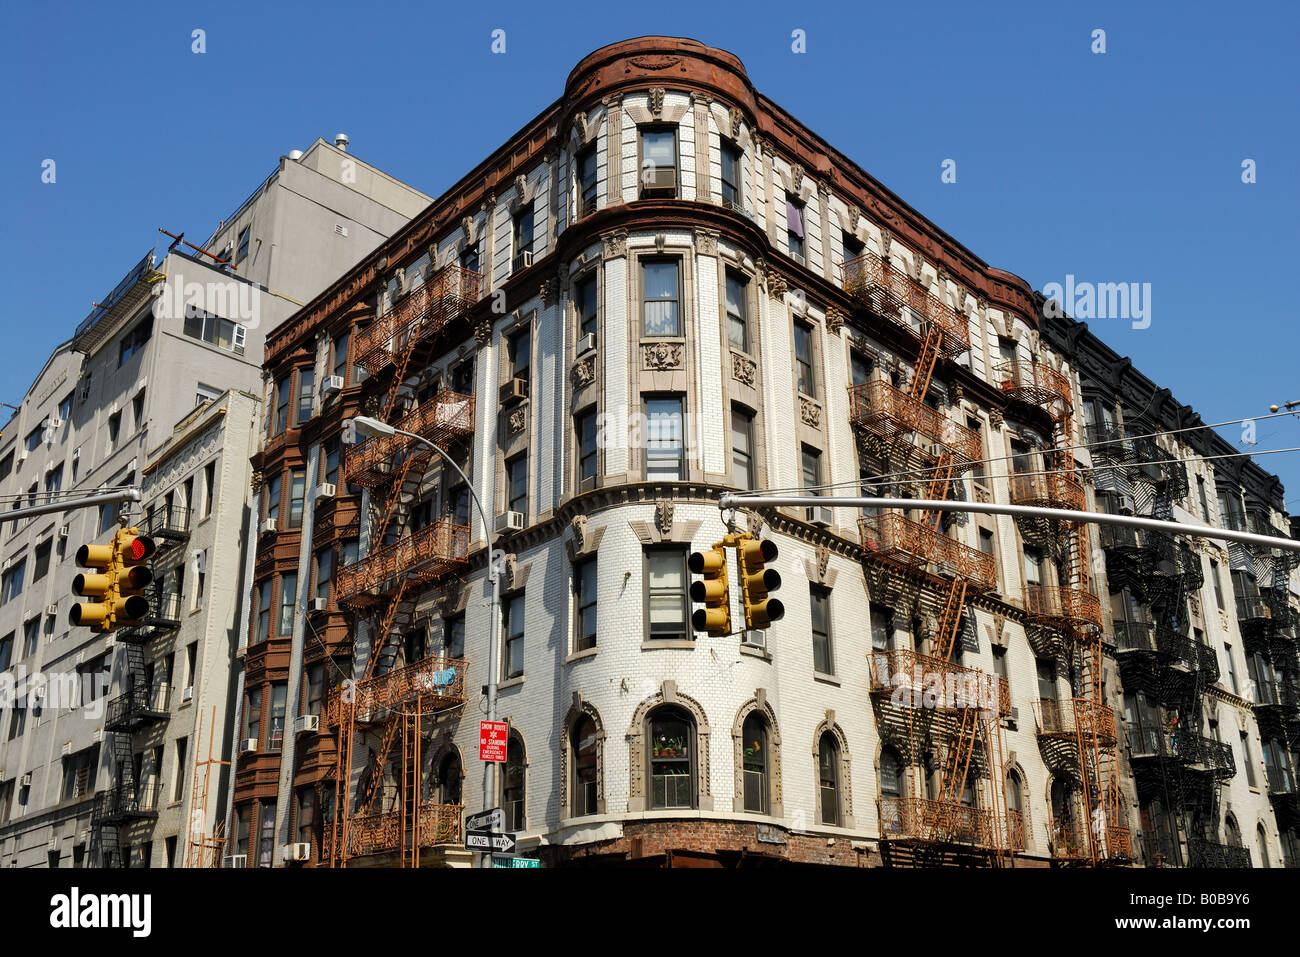 Old Art Deco style Building in New York City Stock Photo: 17459658 ...